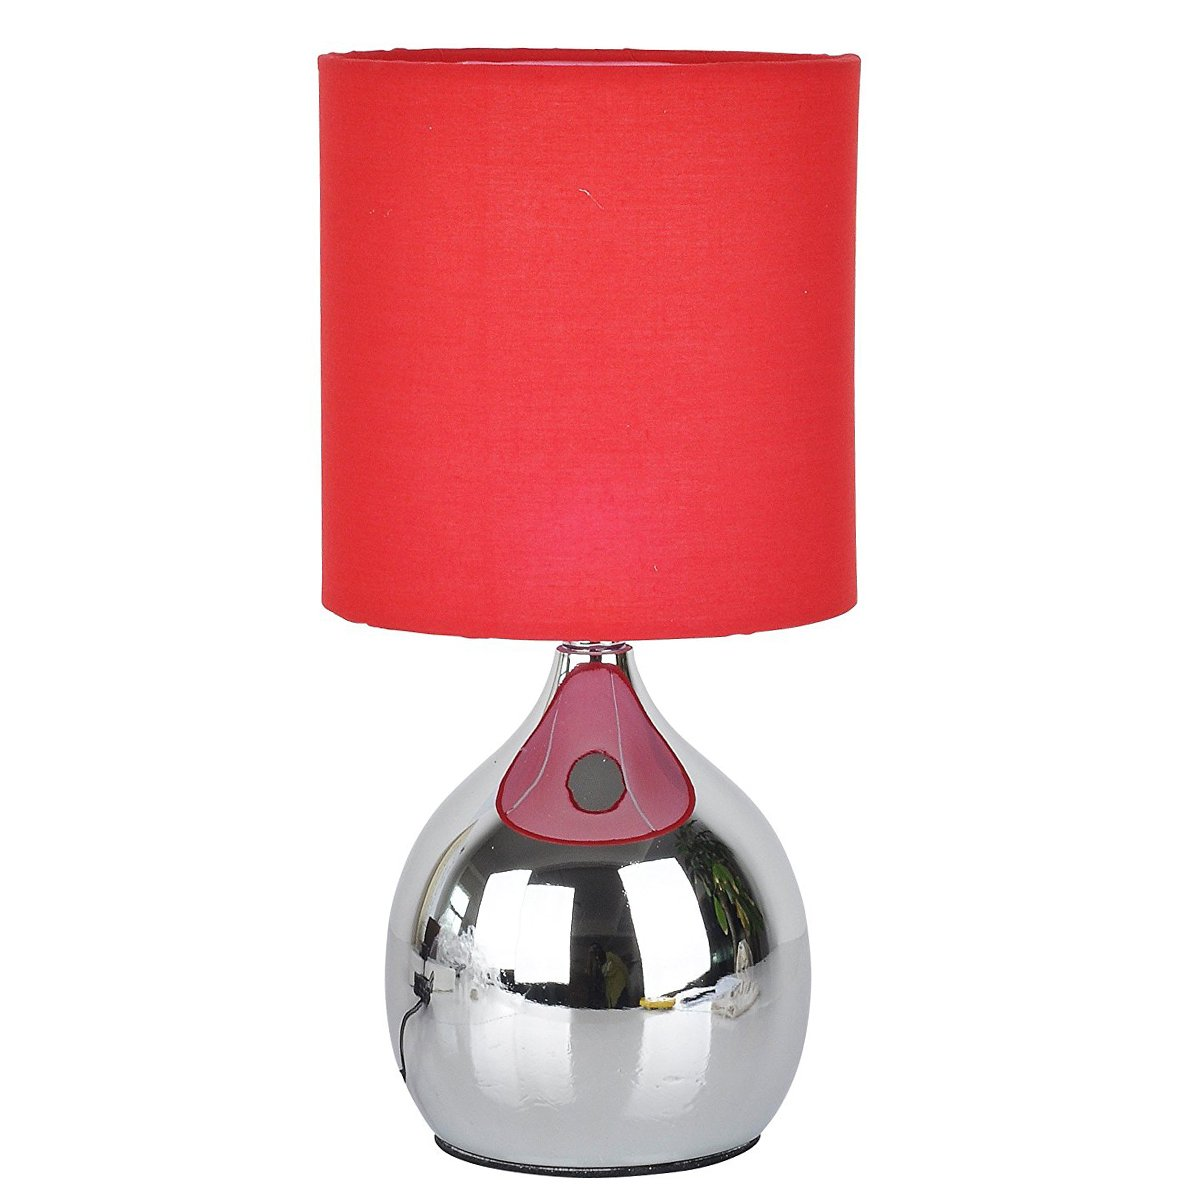 Touch Bedside RED Lamps 4 Stage Black Shade Chrome Base Mini Small Table Desk Light Wide 6 inch Tall 12 inch